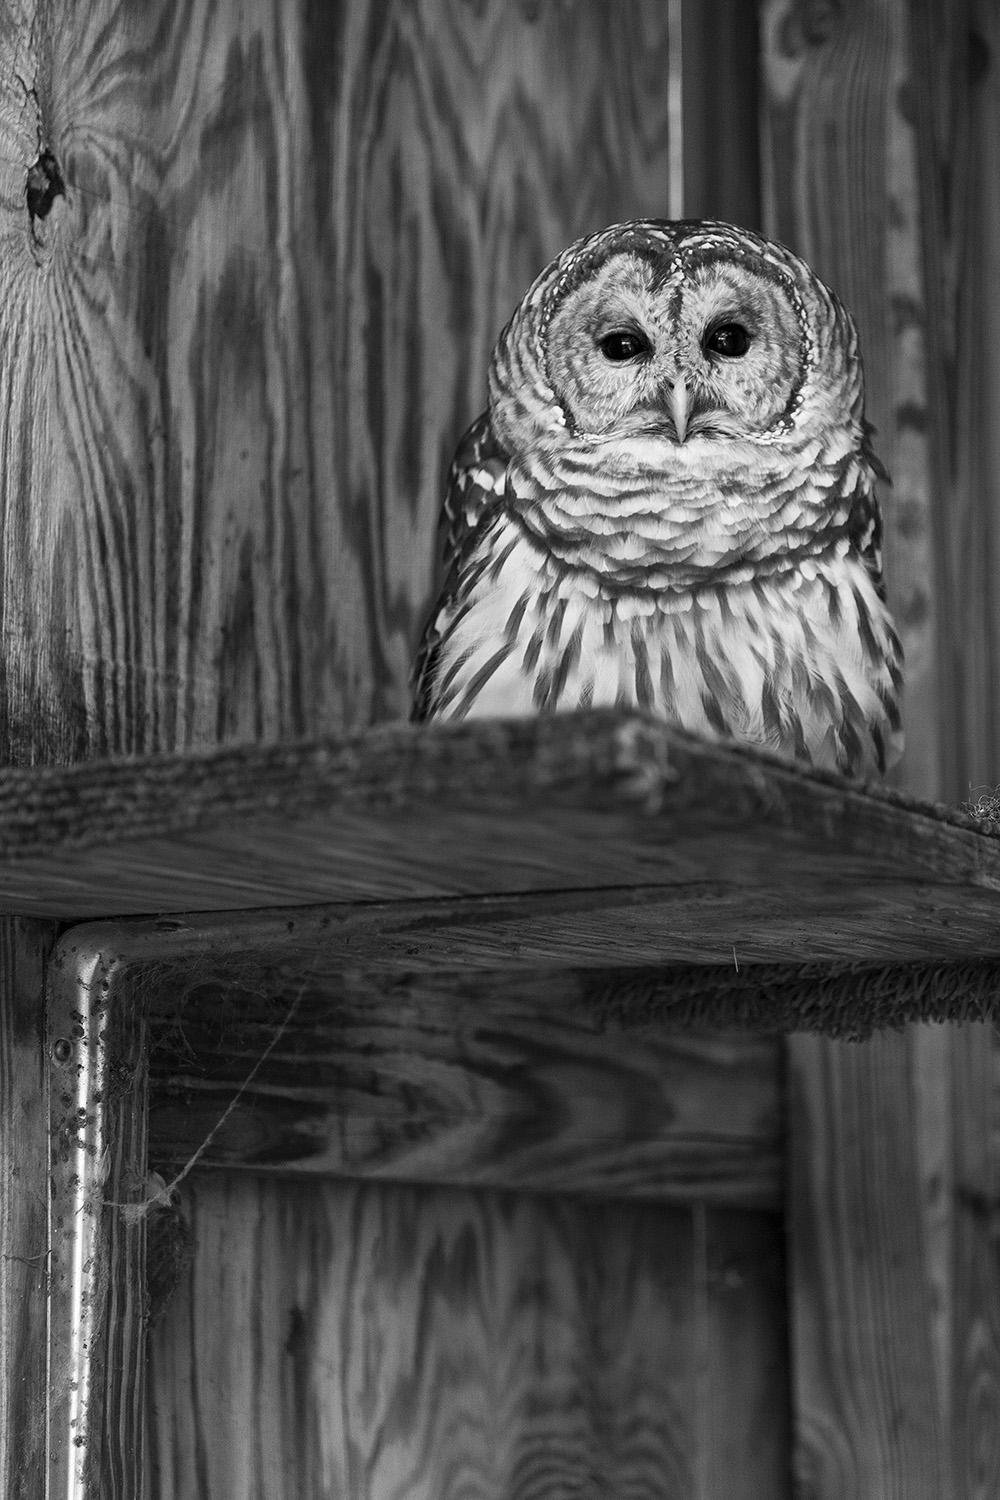 barred-owl-72.jpg